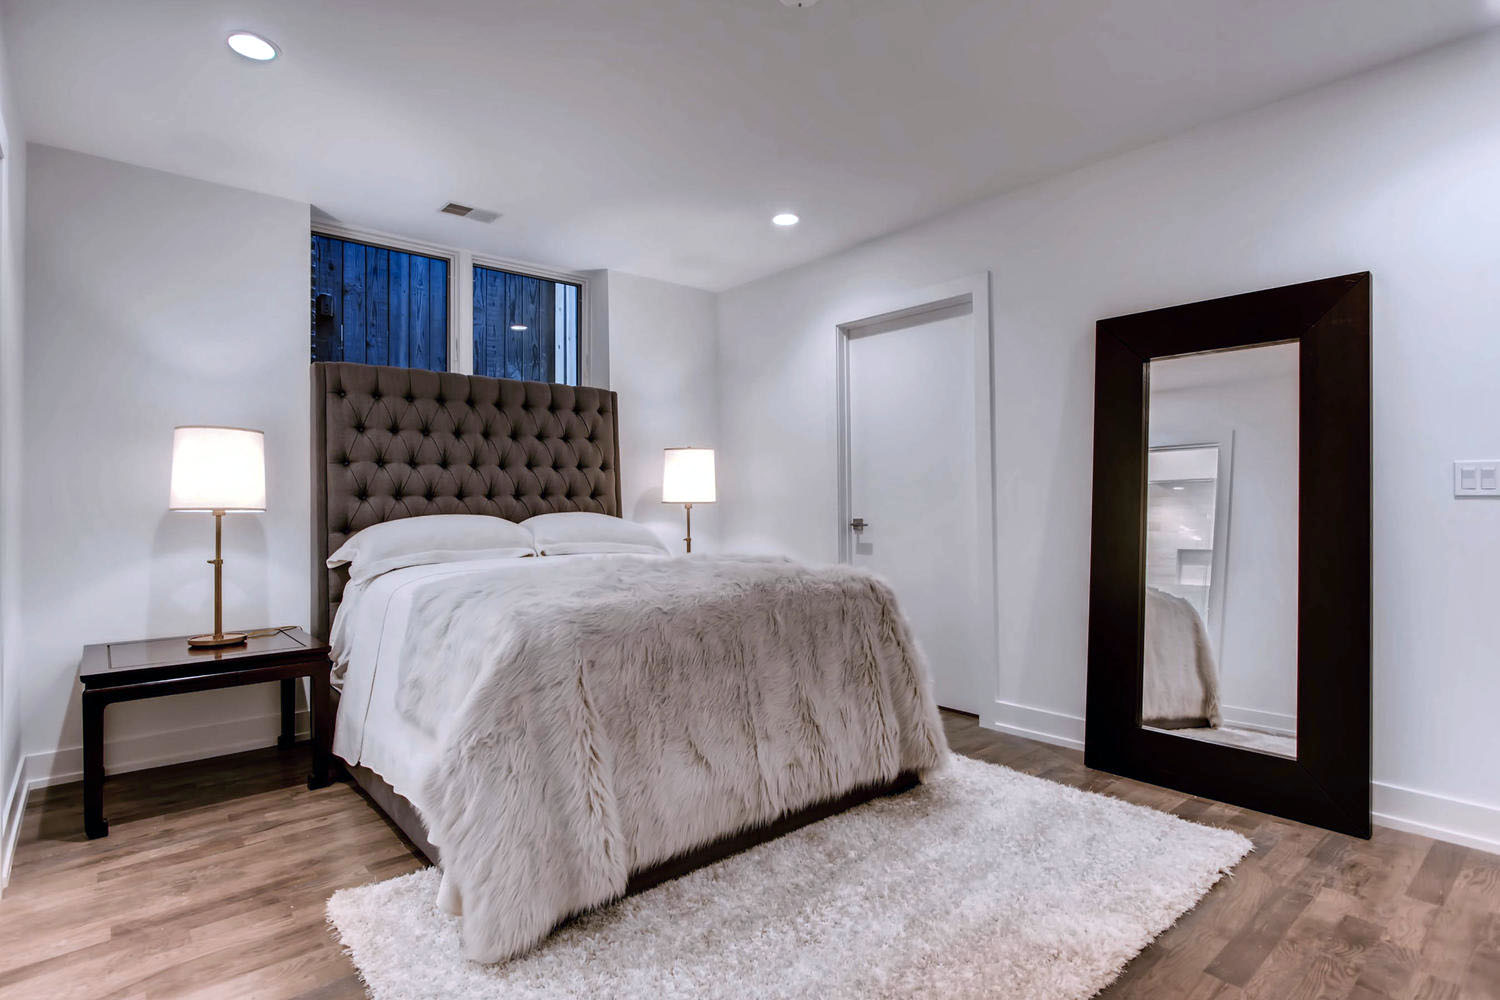 3508 N Reta Ave Chicago IL-large-062-55-Lower Level Master Bedroom-1500x1000-72dpi.jpg